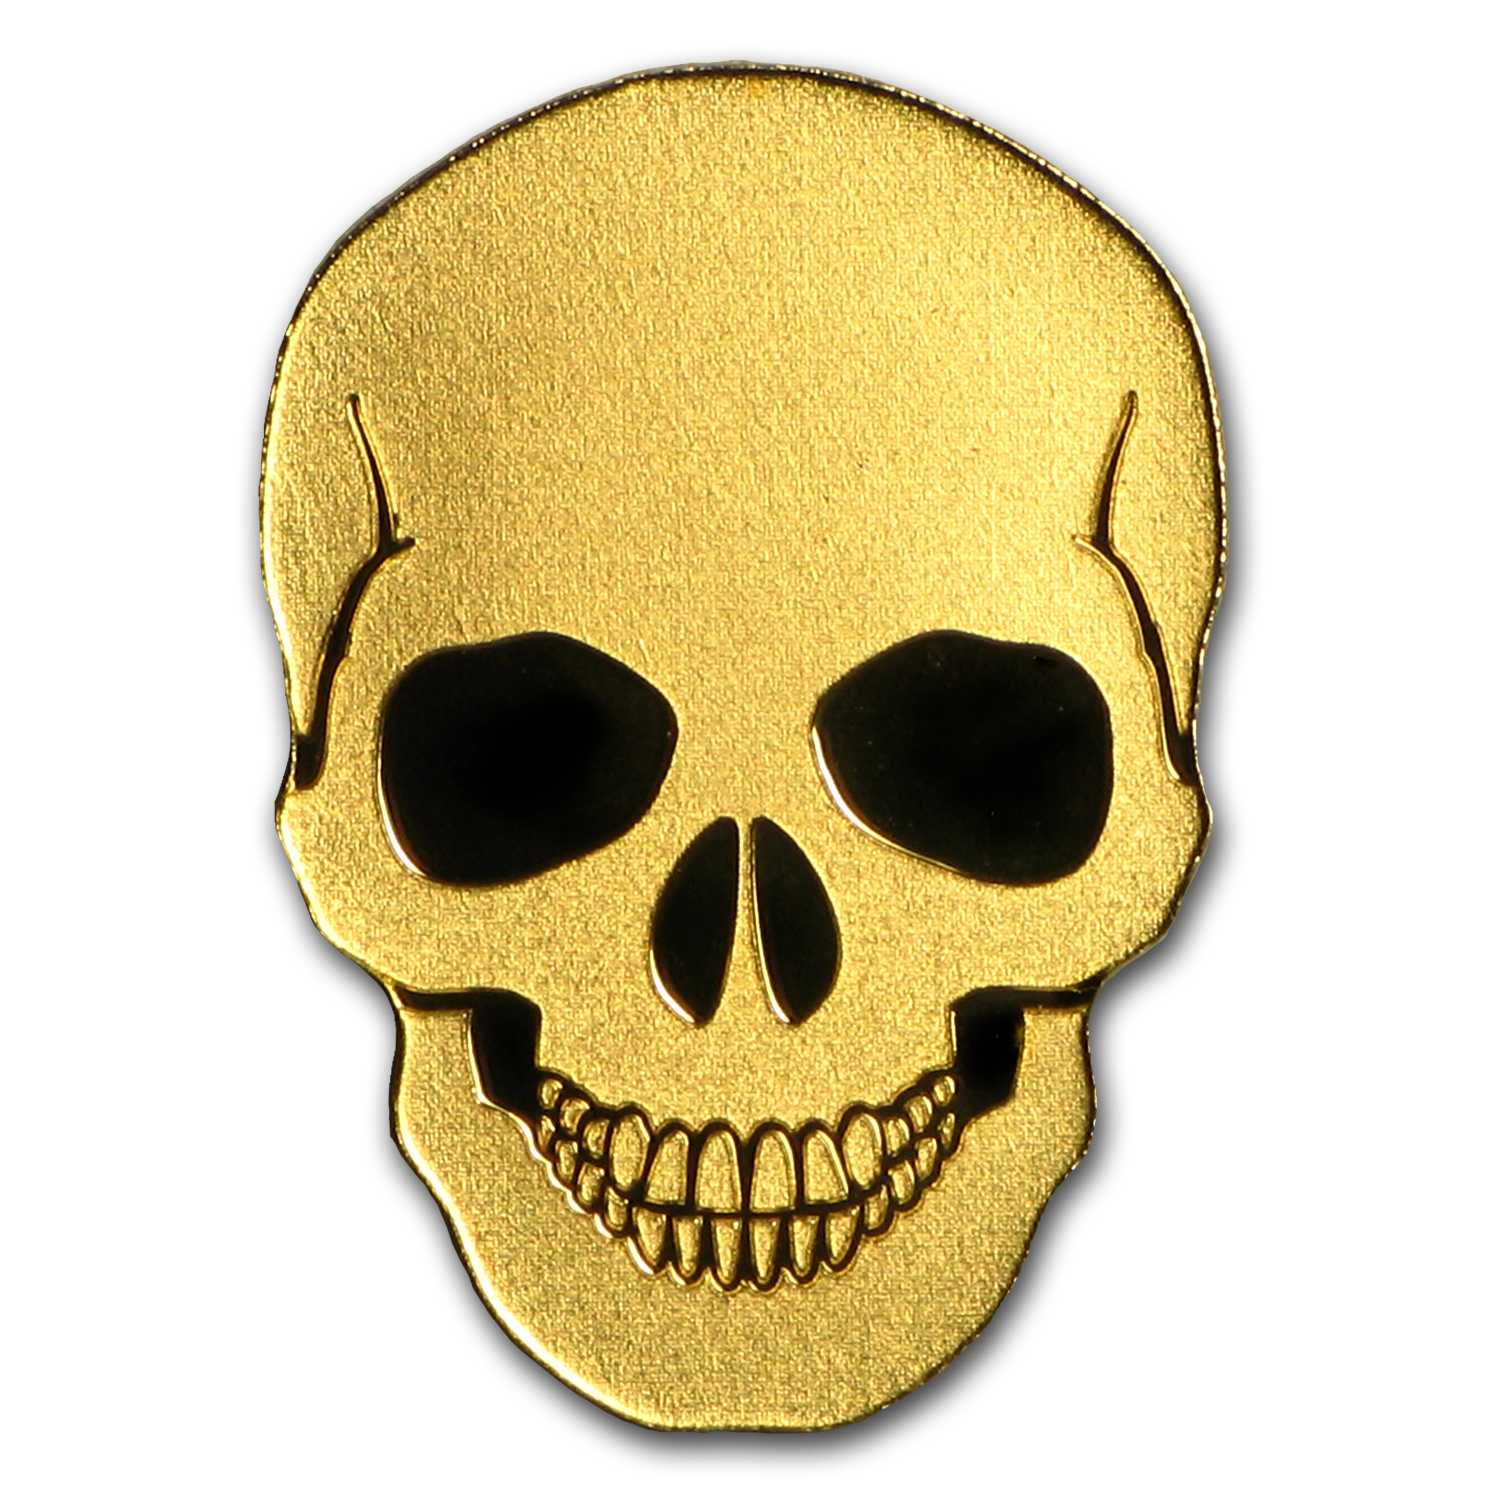 Palau 1/2 gram Gold $1 Golden Skull